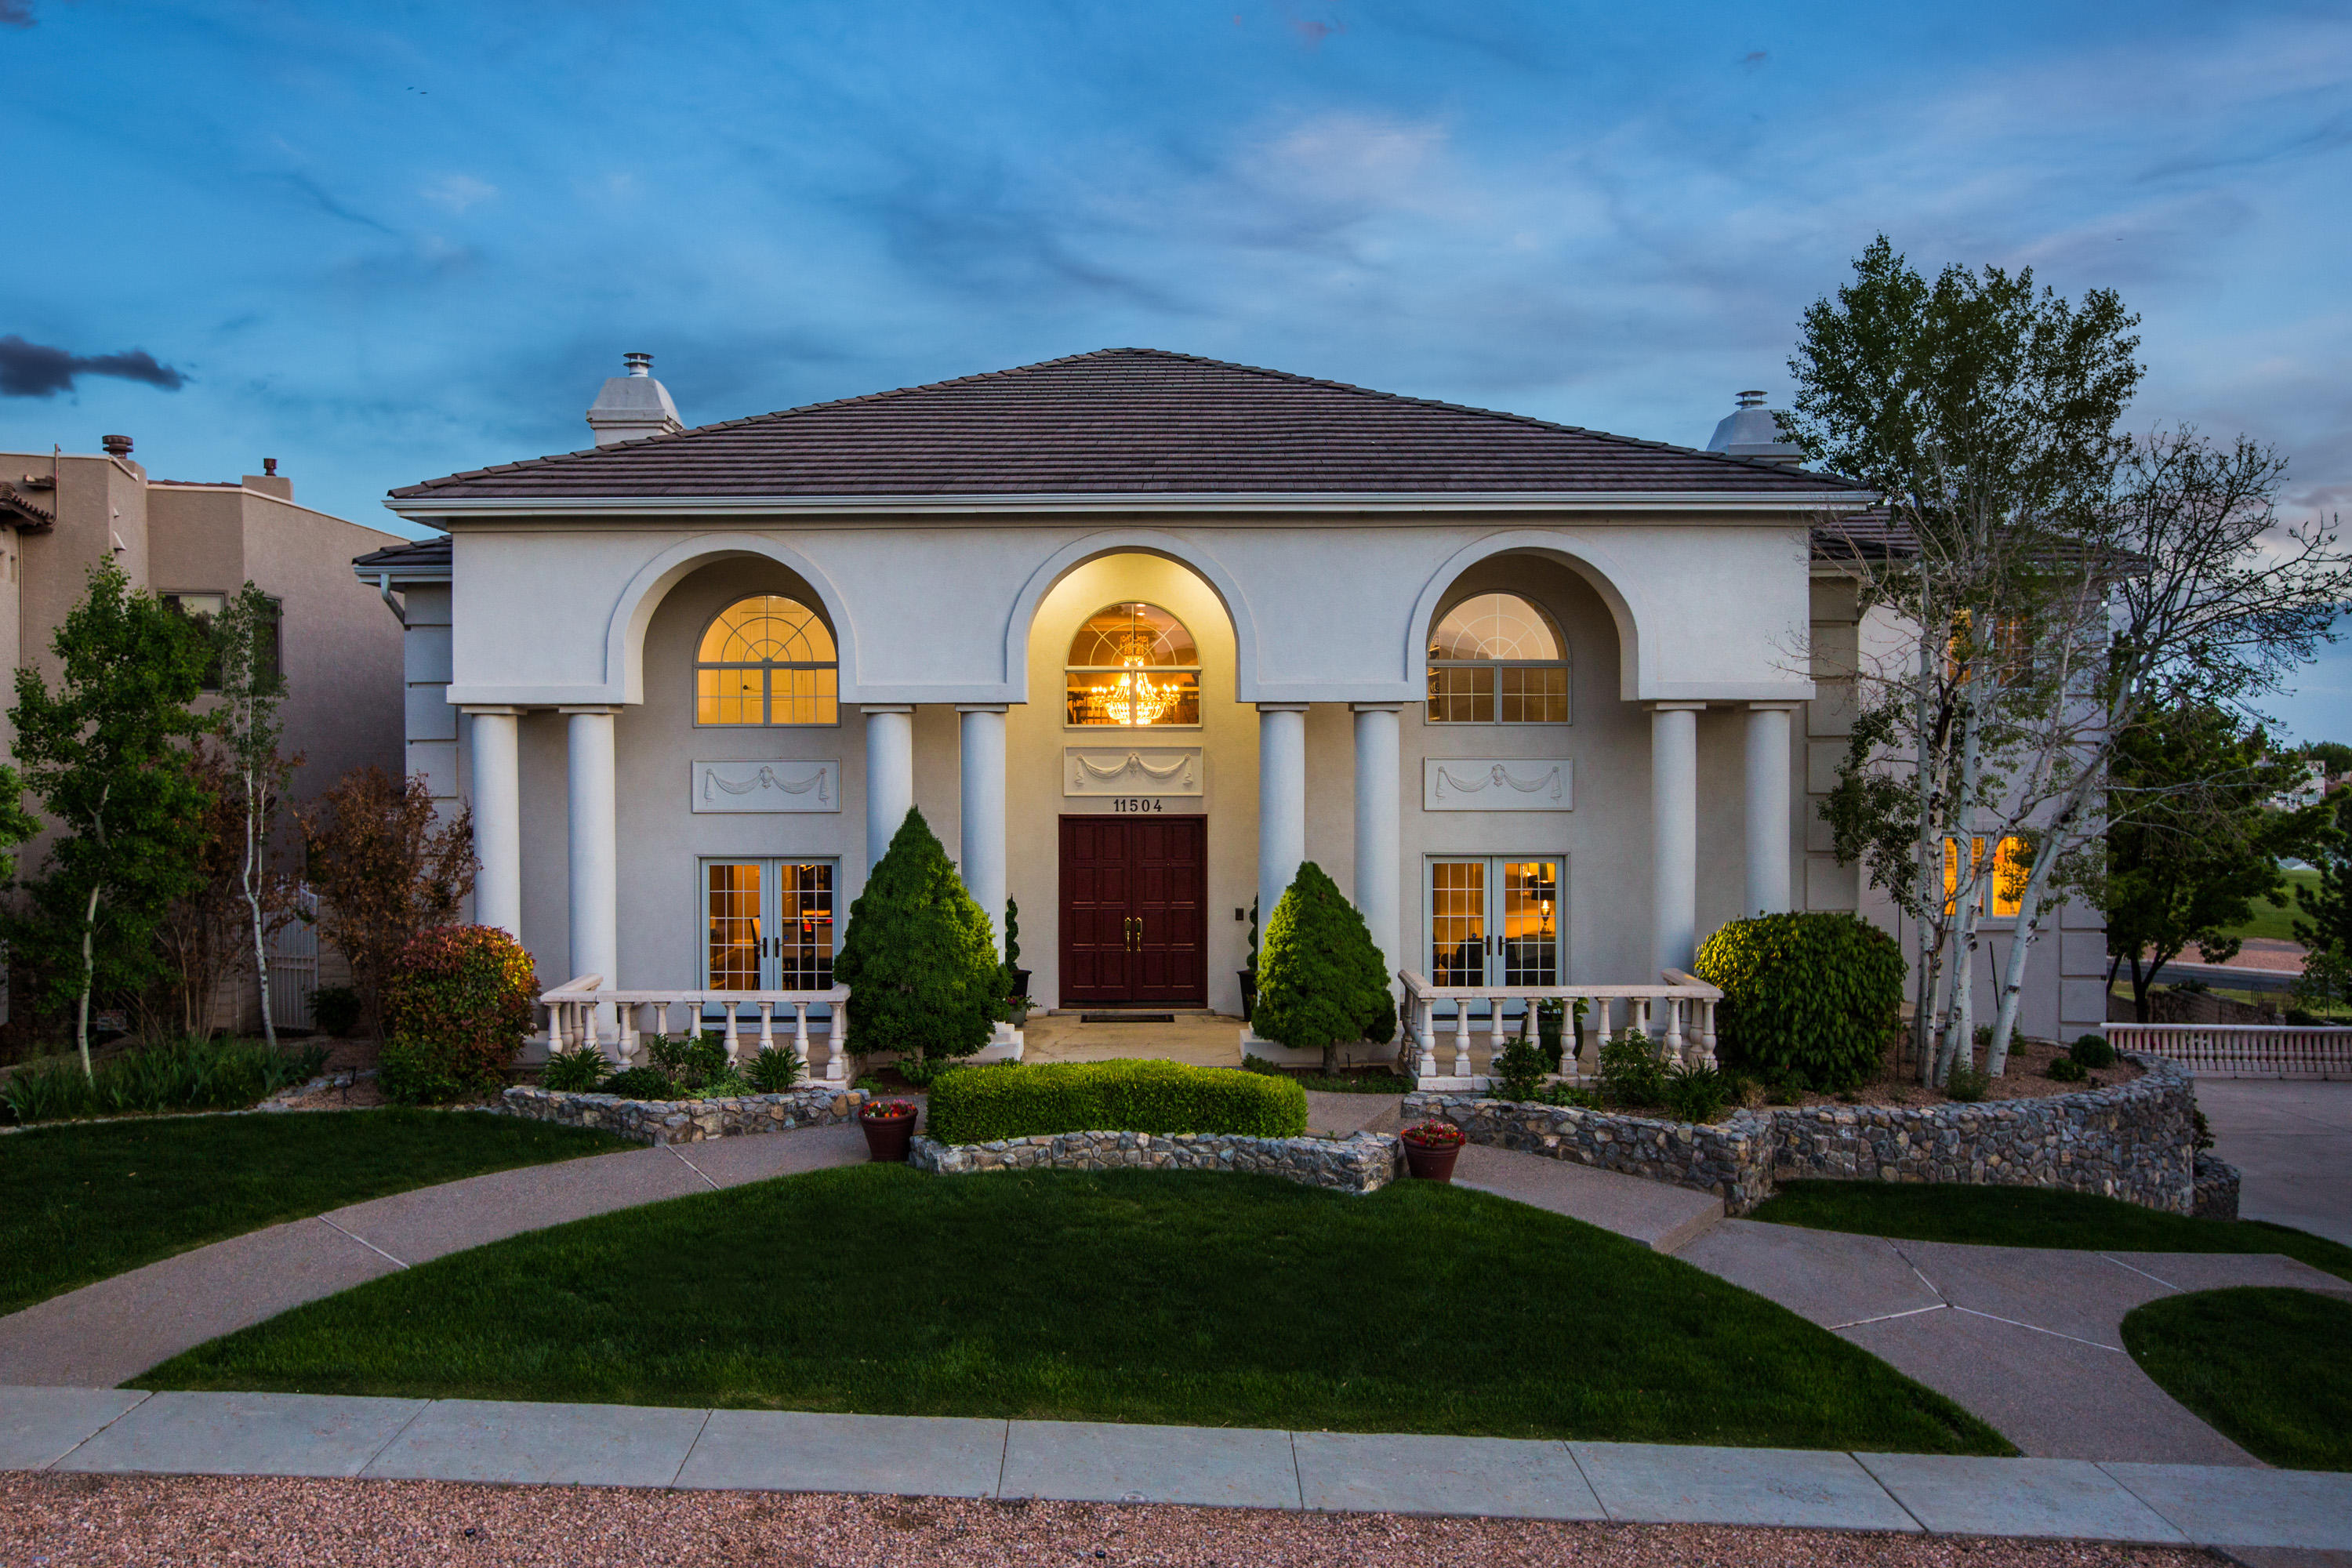 A stunning tri-level residence inspired by custom builder Thomas Springer, complete with views in every direction. This home overlooks a magnificent panorama of the Sandia Mountains, and the city lights of Albuquerque below stretching as far as the eye can see. Its .4 acre encompass a wealth of luxurious amenities, including a chef's kitchen offering you custom cabinetry by Ernie Torres, Sub-Zero, Viking, travertine backsplash, oak hardwood and travertine flooring, 20' ceilings, secluded lot with room for a swimming pool, and an expansive backyard that backs up to the Tanoan Golf Course. This gorgeous home faithfully reflects the elegance and grandeur so characteristic of a timeless design and is part of Albuquerque's most private and prestigious community, Sauvignon.